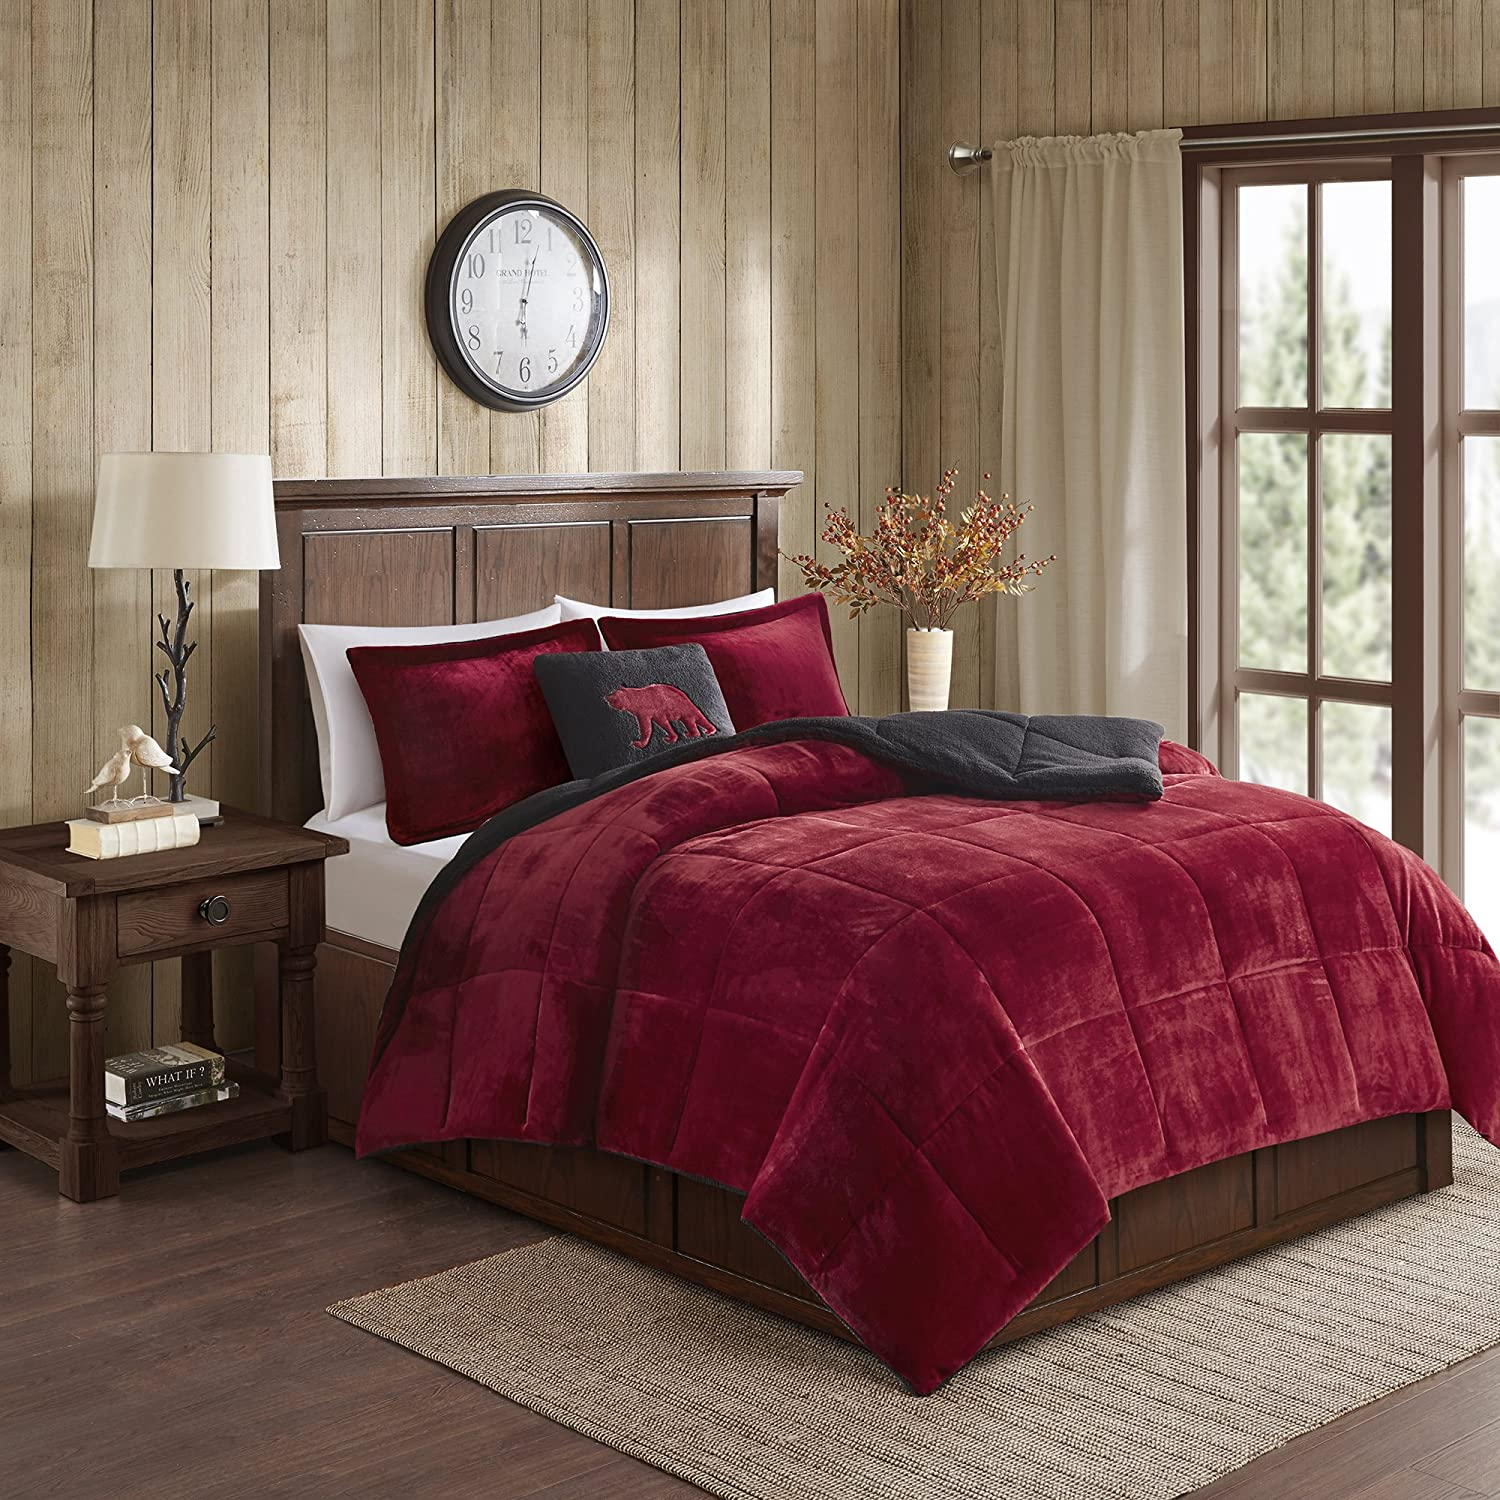 Woolrich Alton Ultra Soft Plush to Sherpa Berber Down Alternative Cold Weather Winter Warm Comforter Set Bedding, King, Red/Black